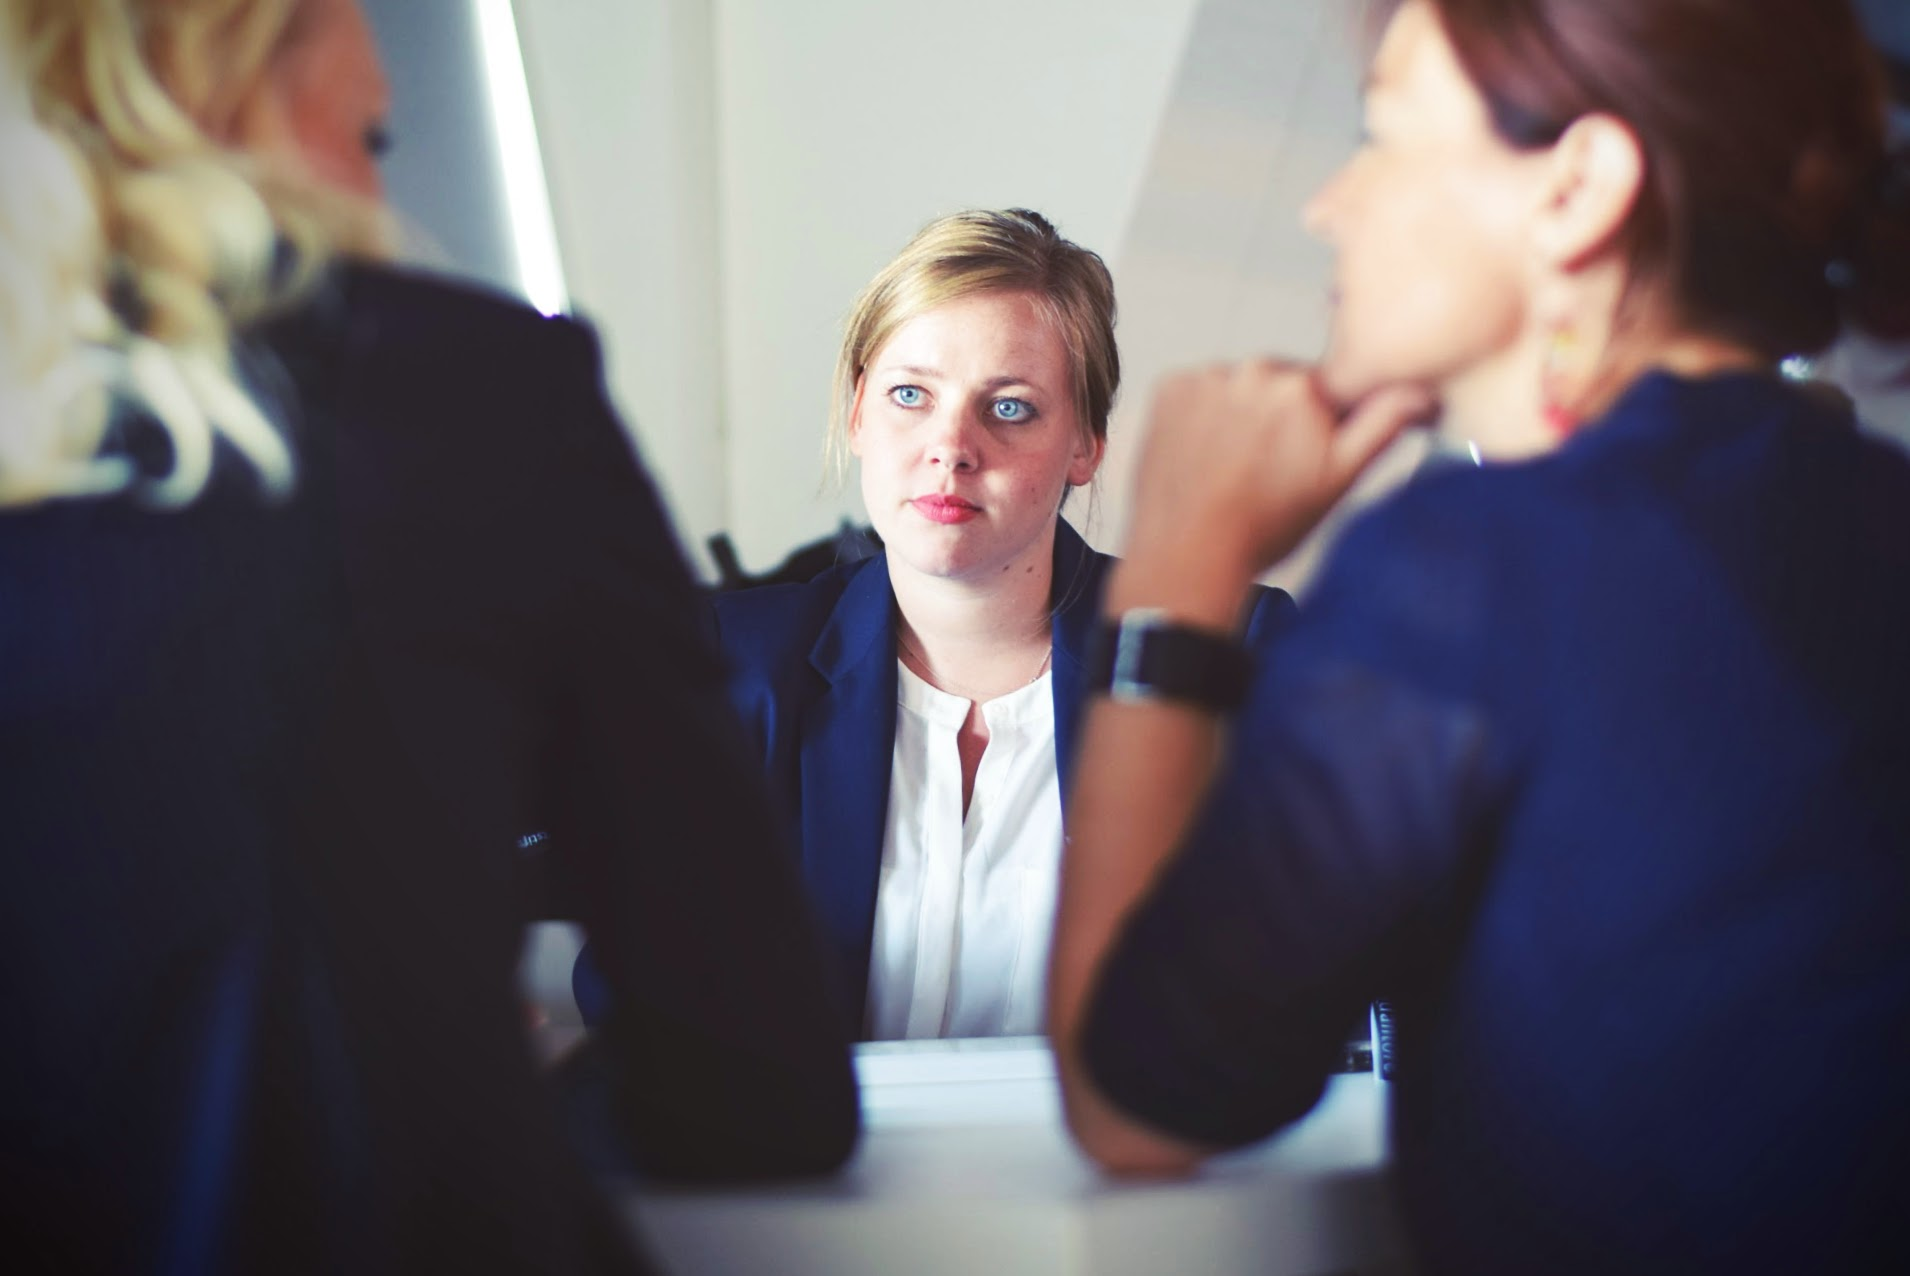 Interview Nerves and how to deal with them.